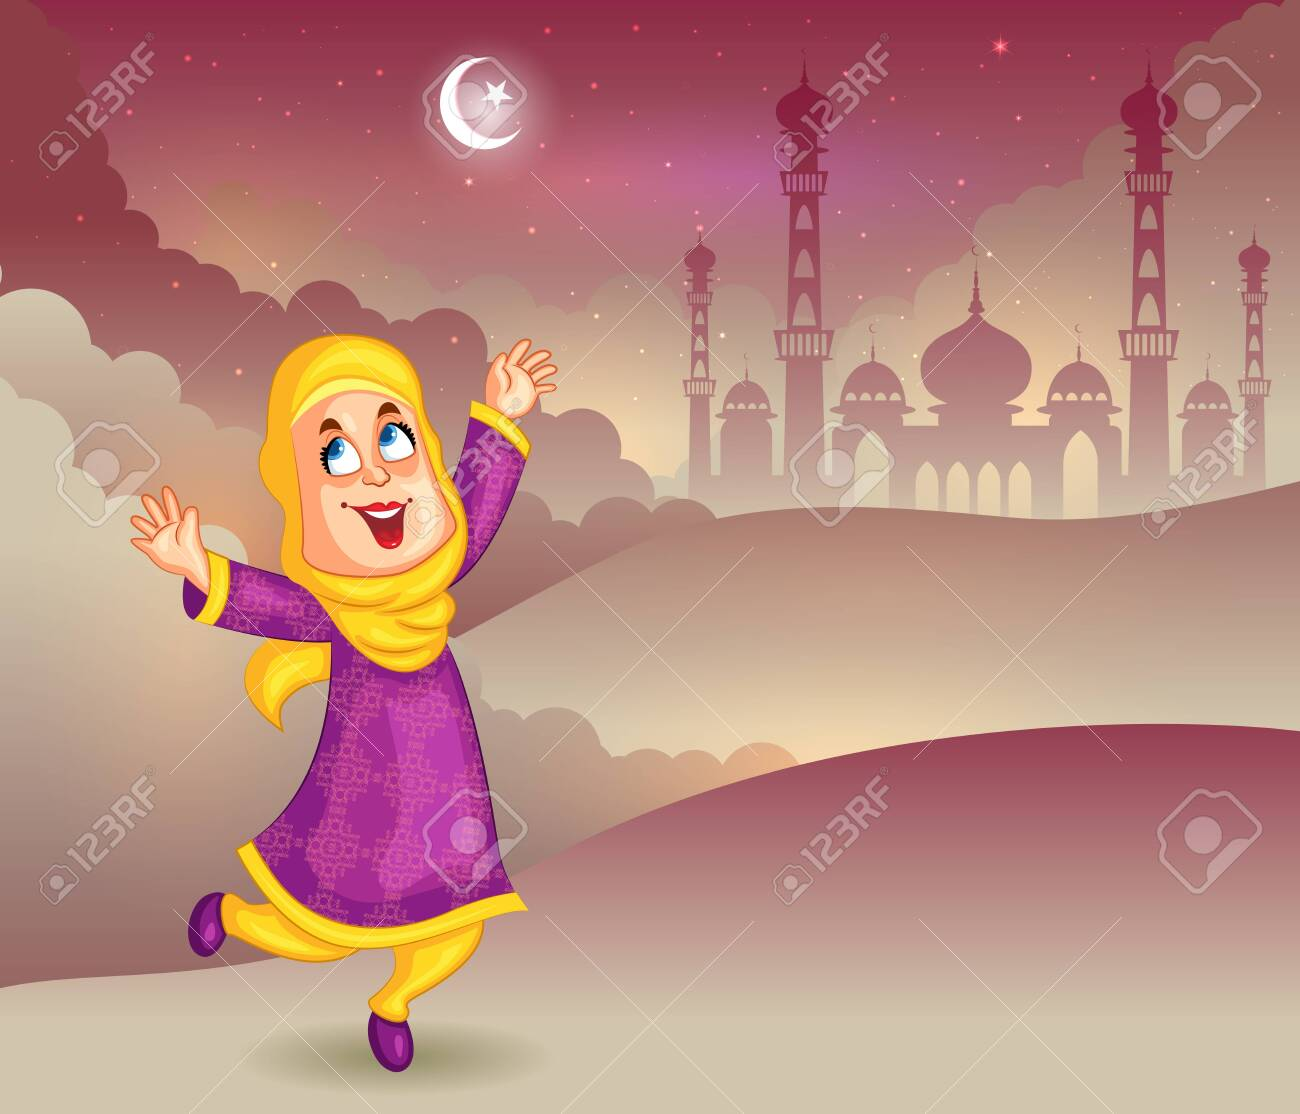 Happy muslim girl wishing Eid mubarak   IMAGES, GIF, ANIMATED GIF, WALLPAPER, STICKER FOR WHATSAPP & FACEBOOK